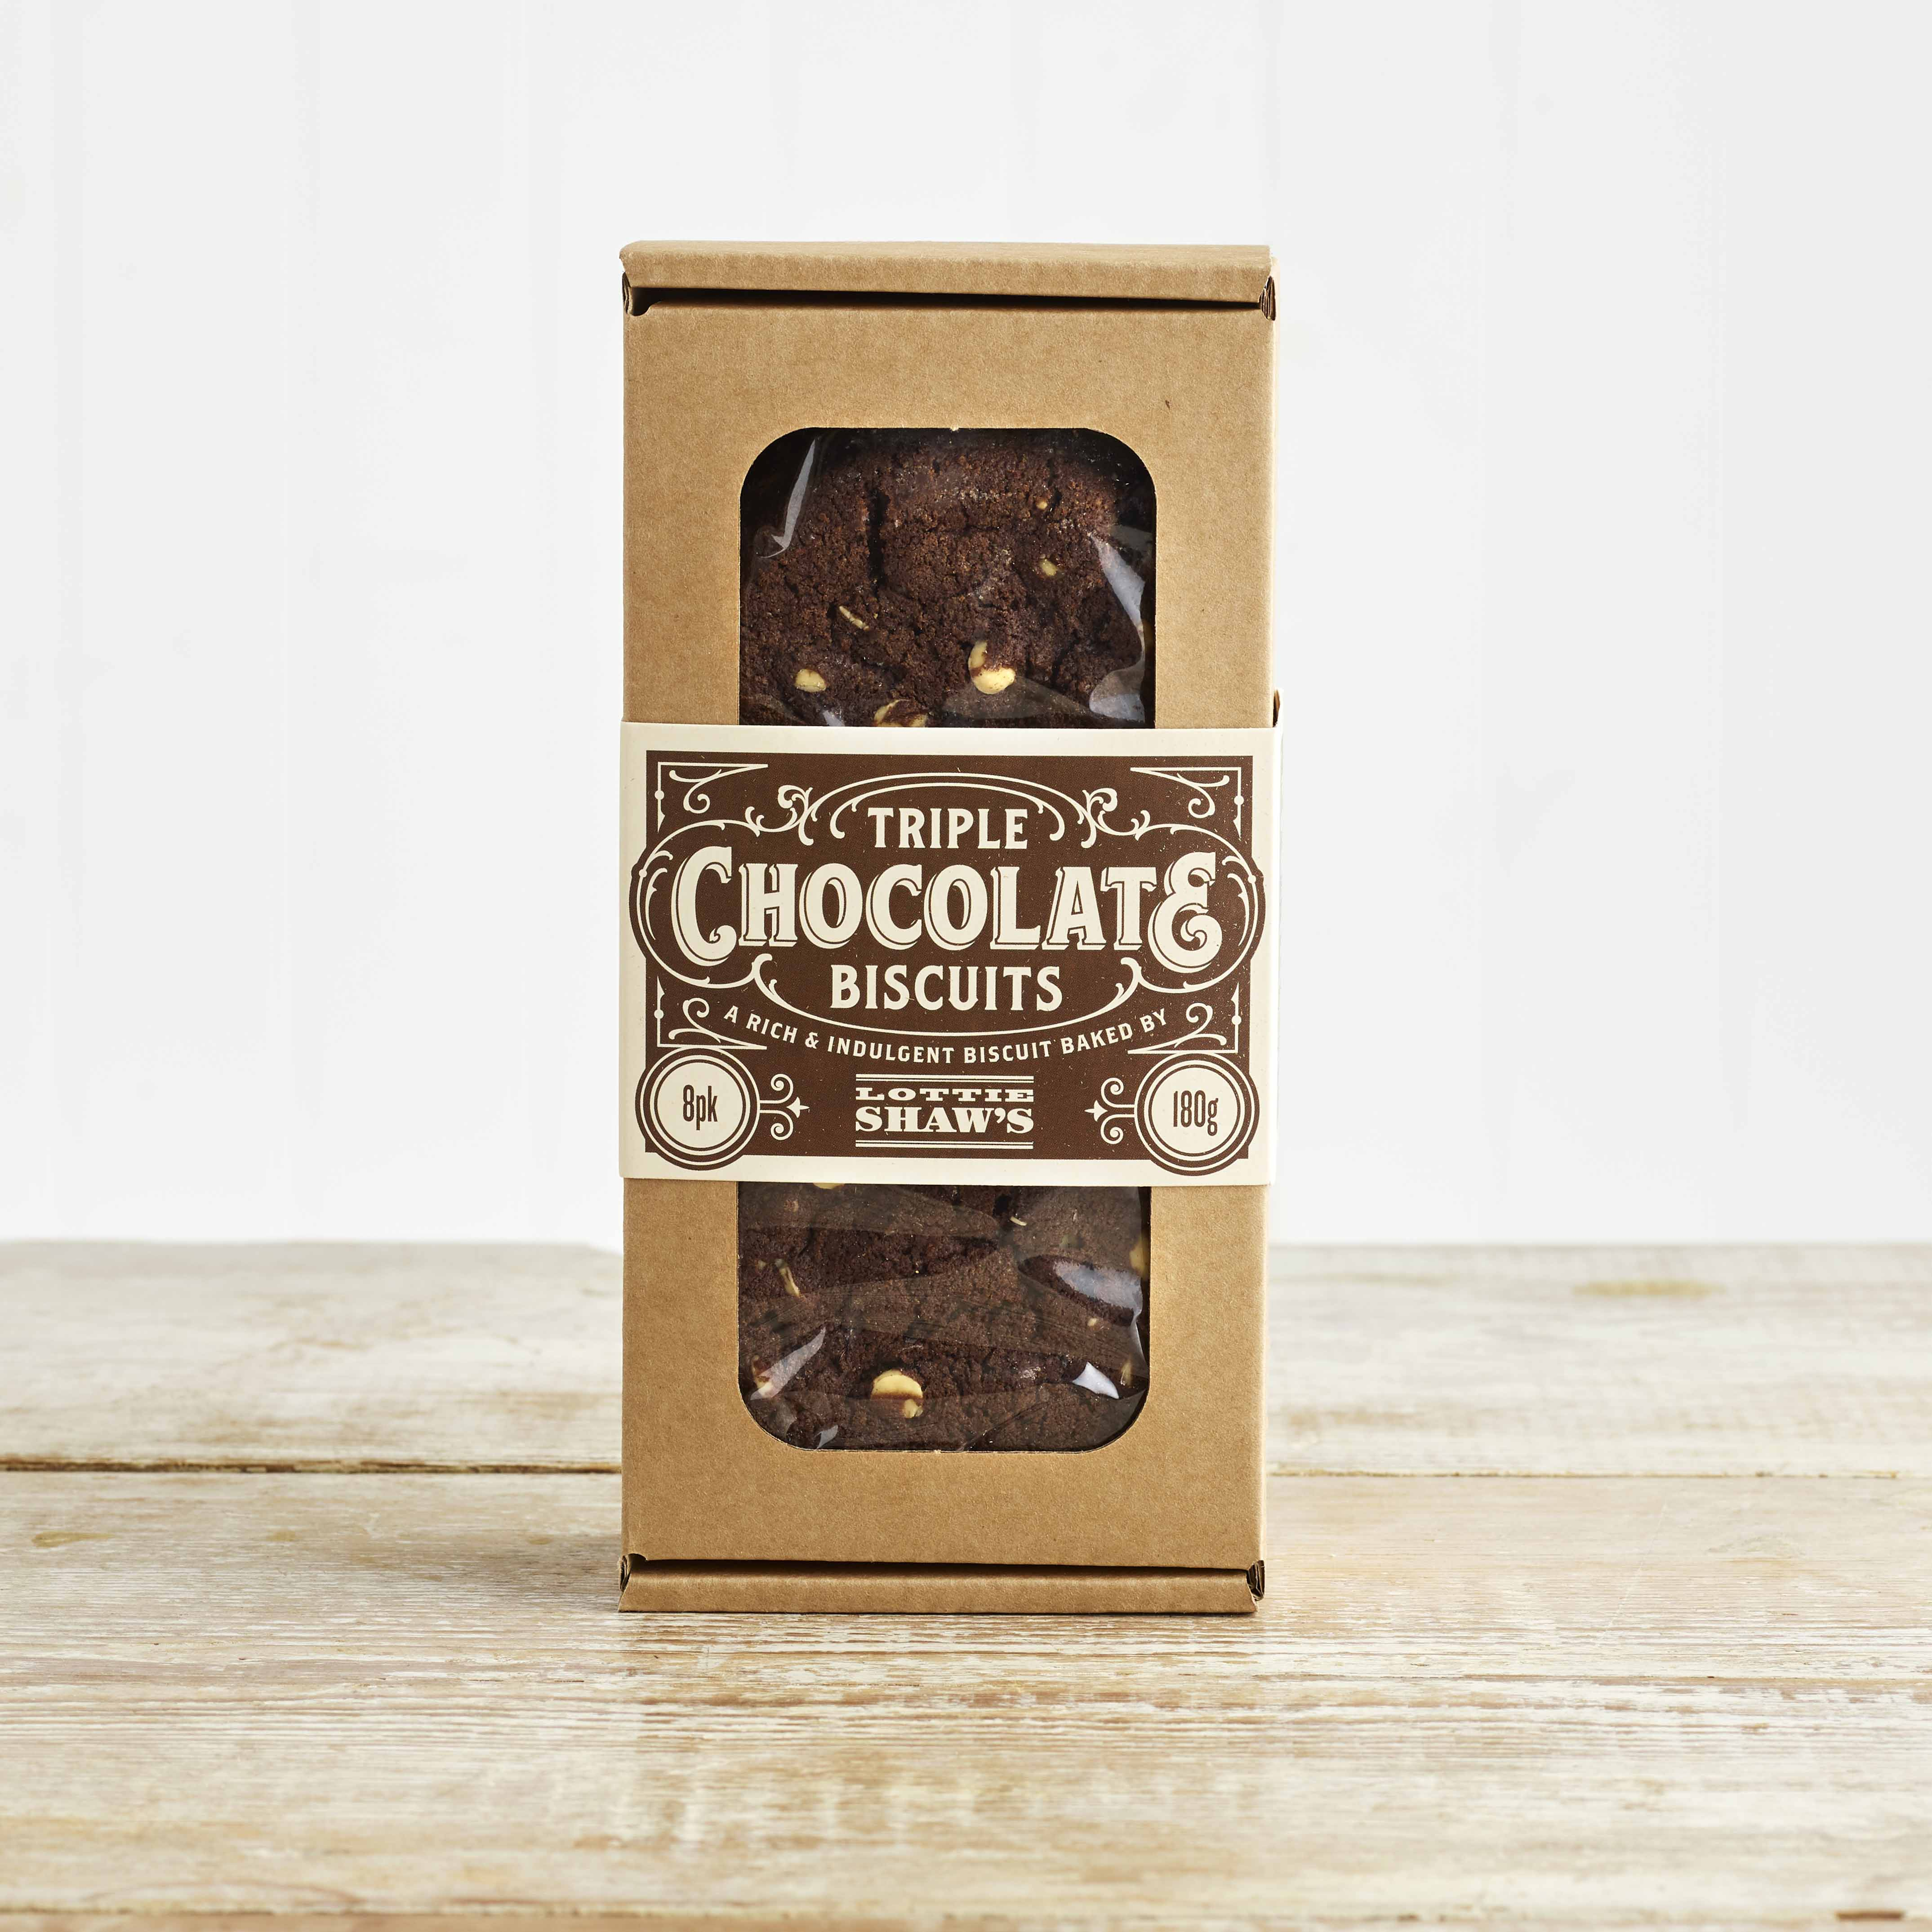 Lottie Shaw's Triple Chocolate Biscuits, 180g